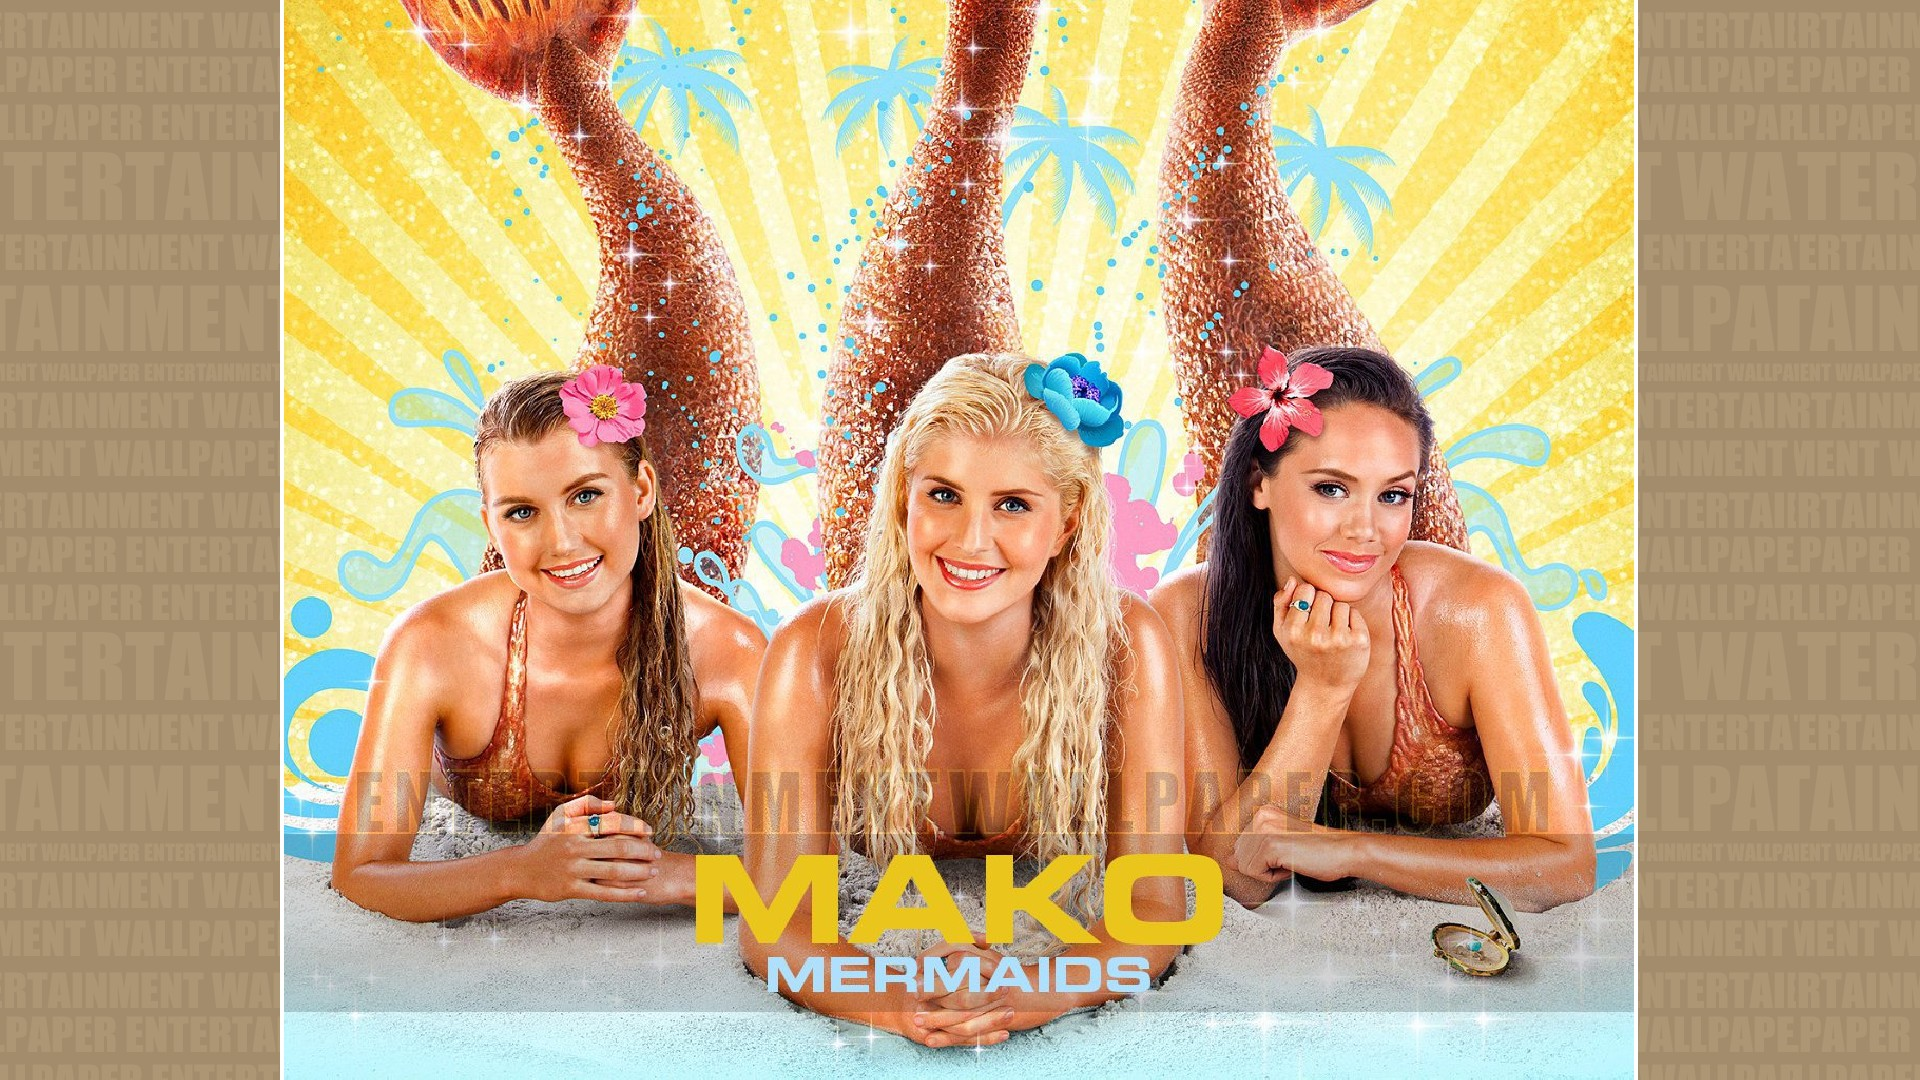 Mako Mermaids